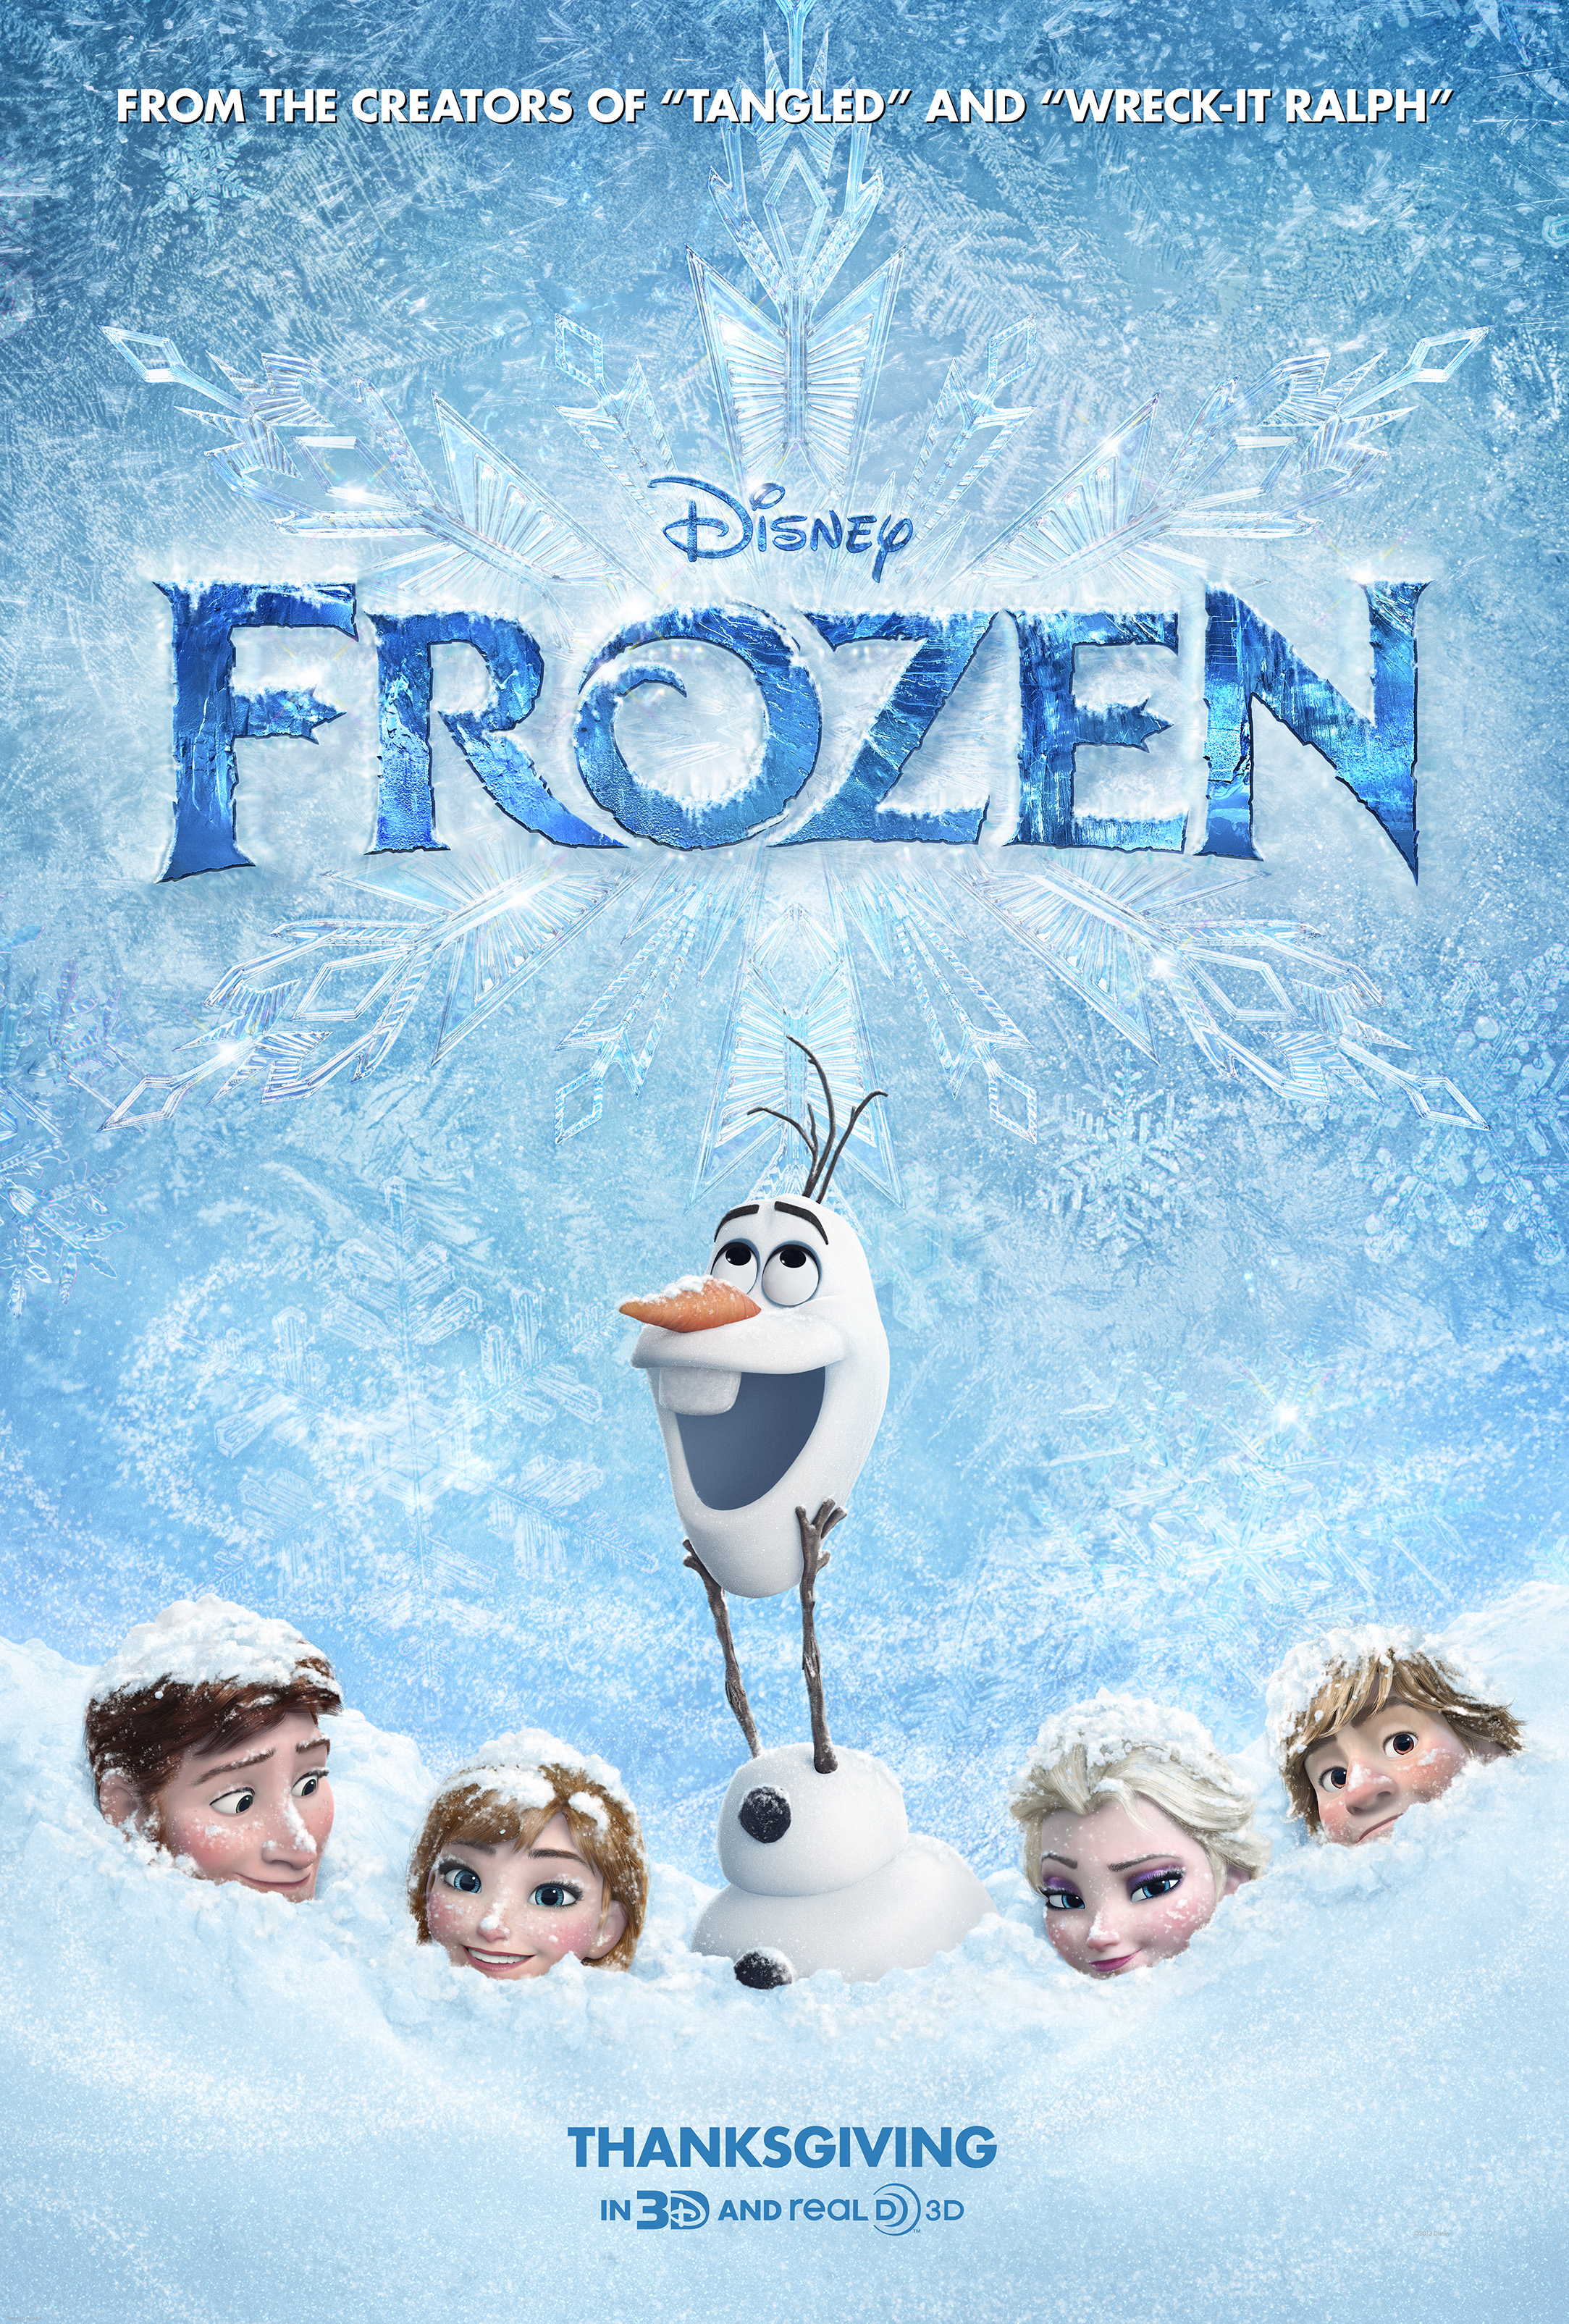 Pastrami Flick Review: Frozen